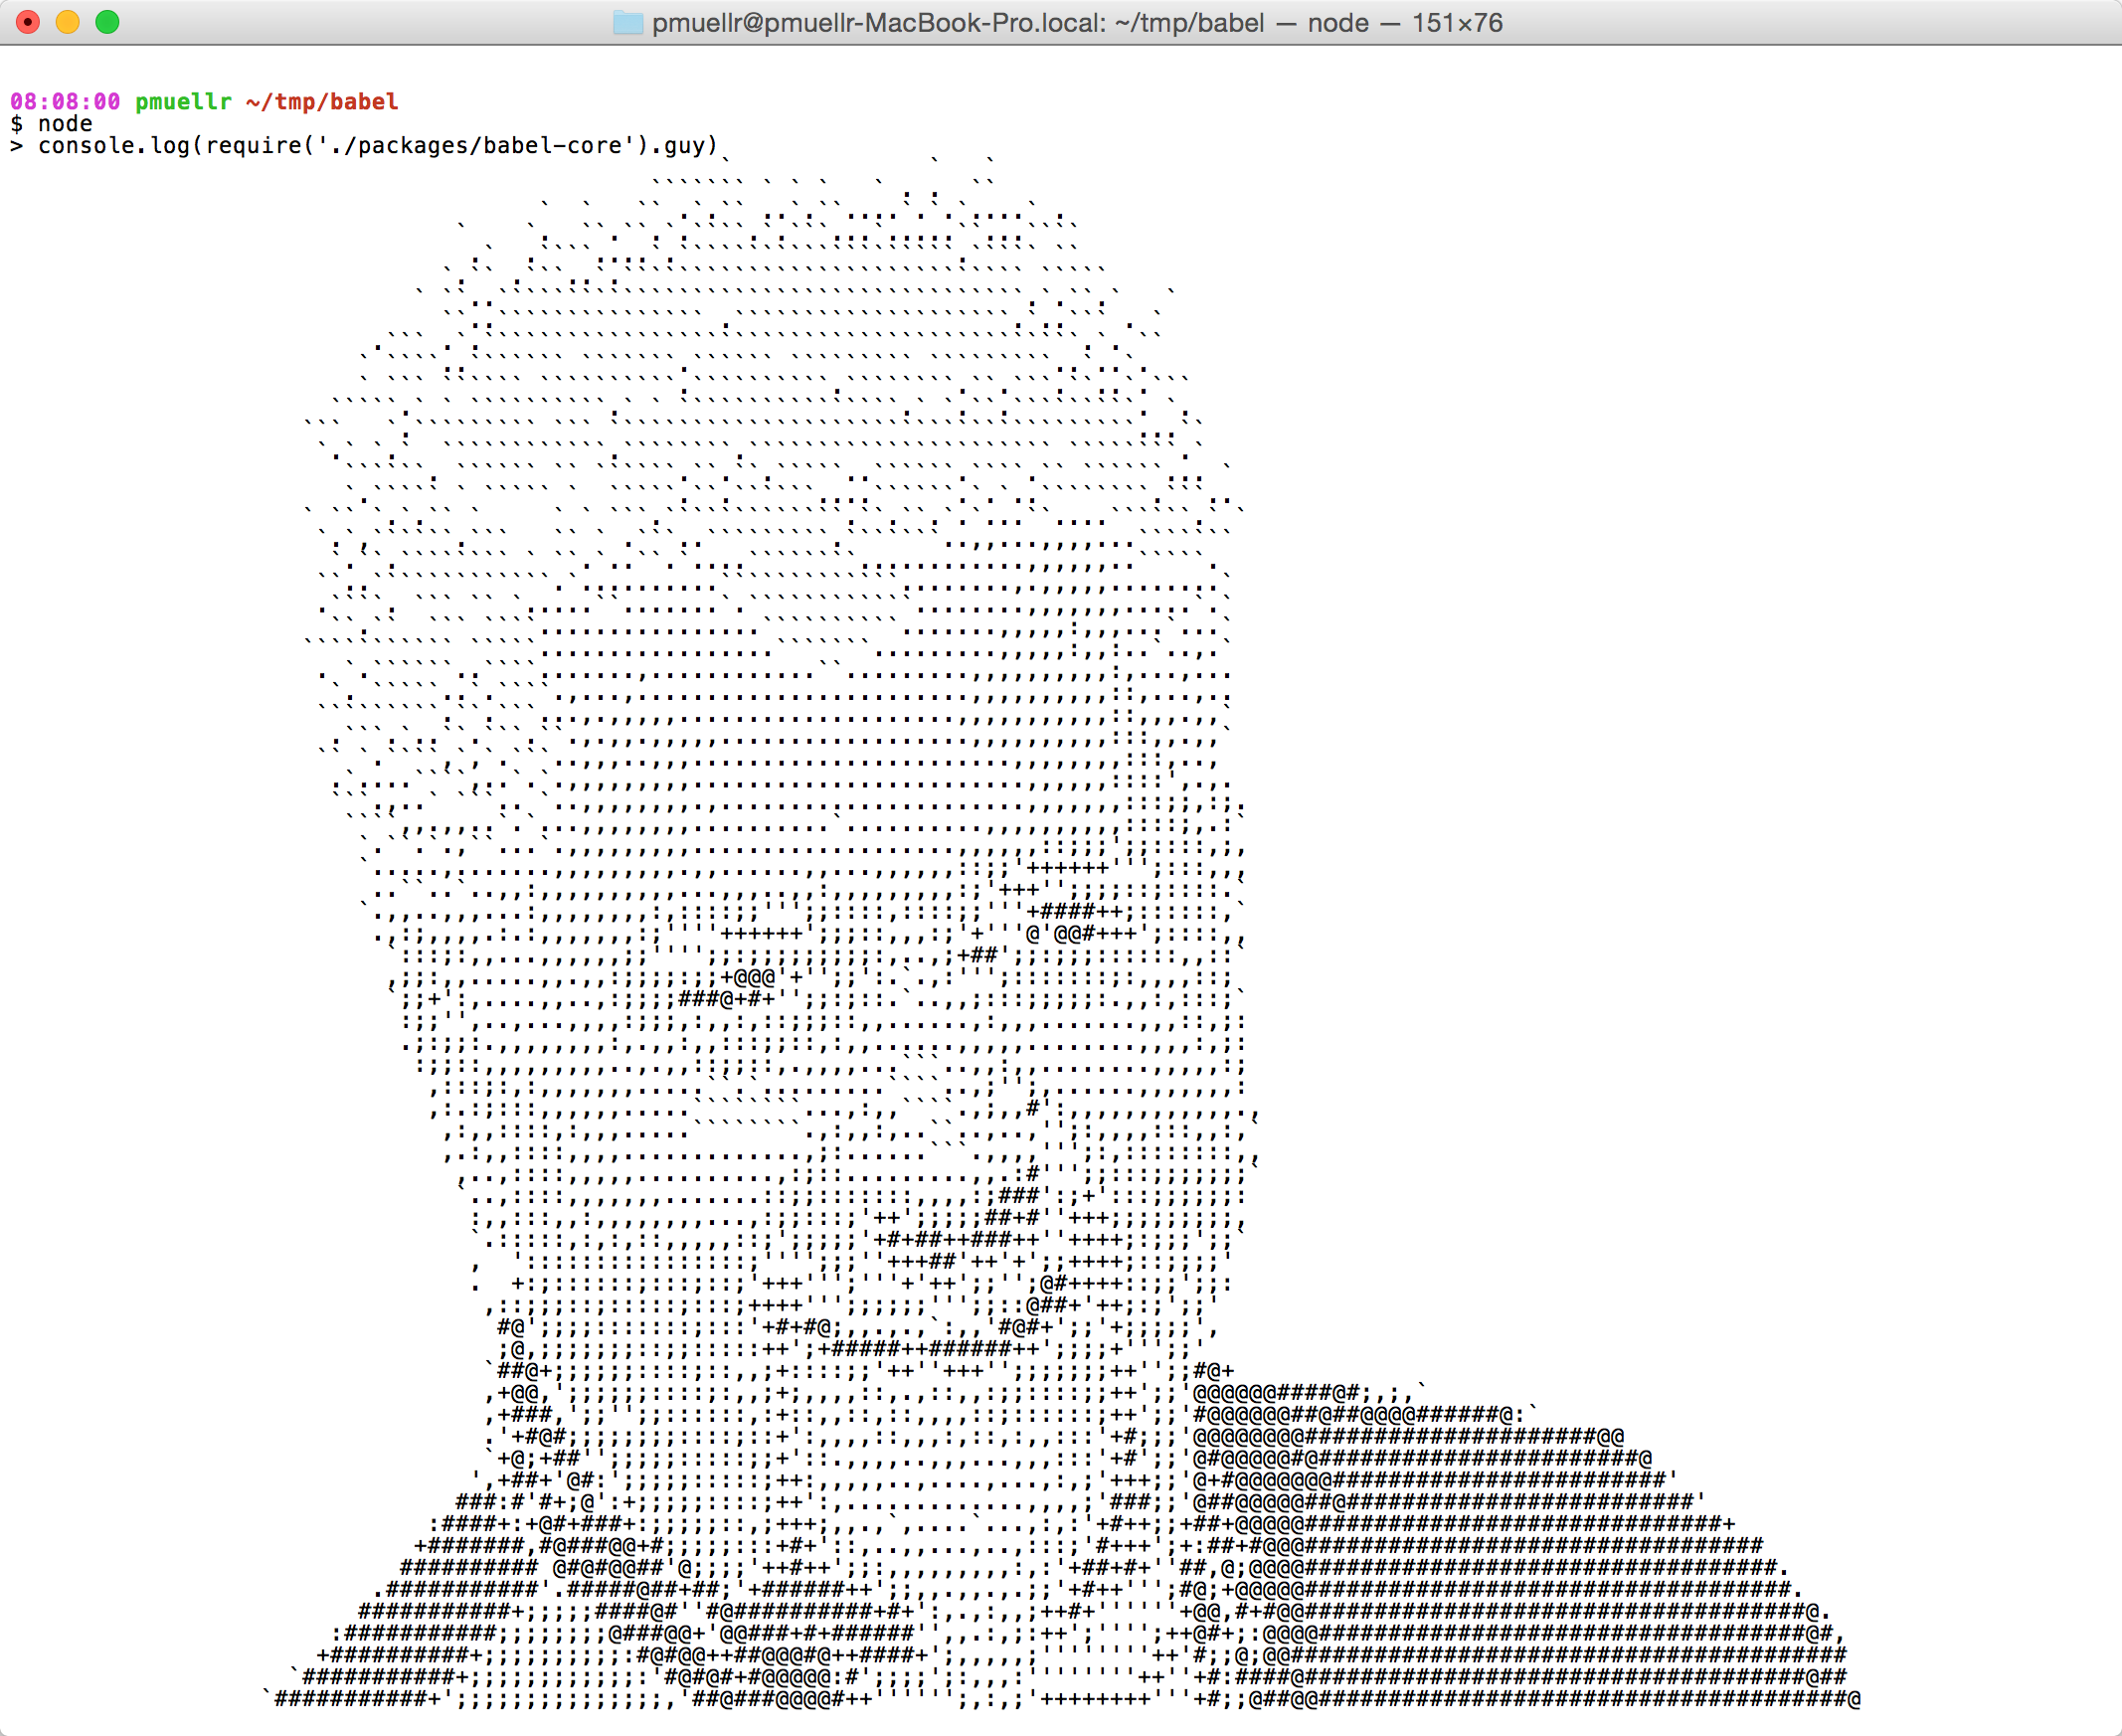 Ascii art of Guy Fieri in babel